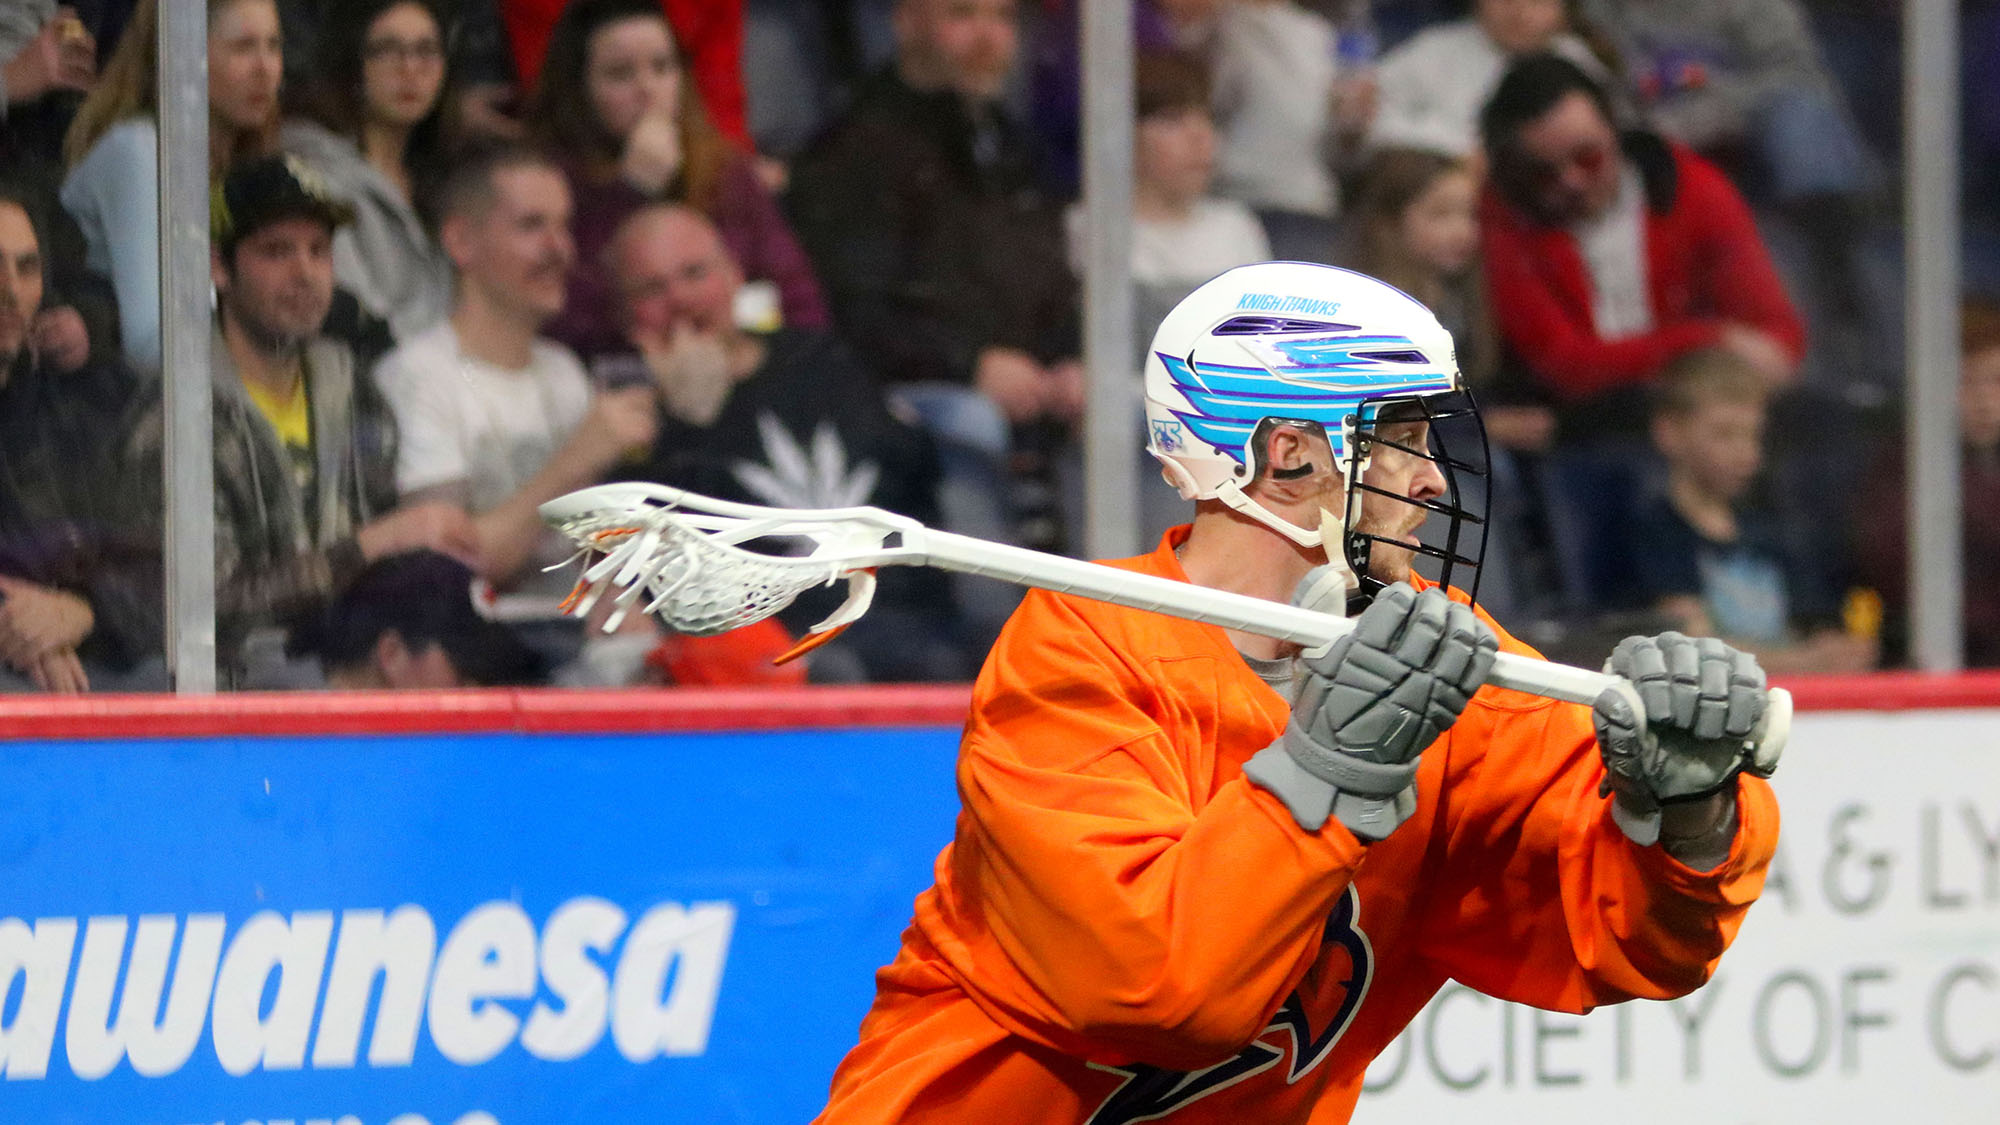 The Halifax Thunderbirds gave the city a taste of lacrosse with a high scoring debut.